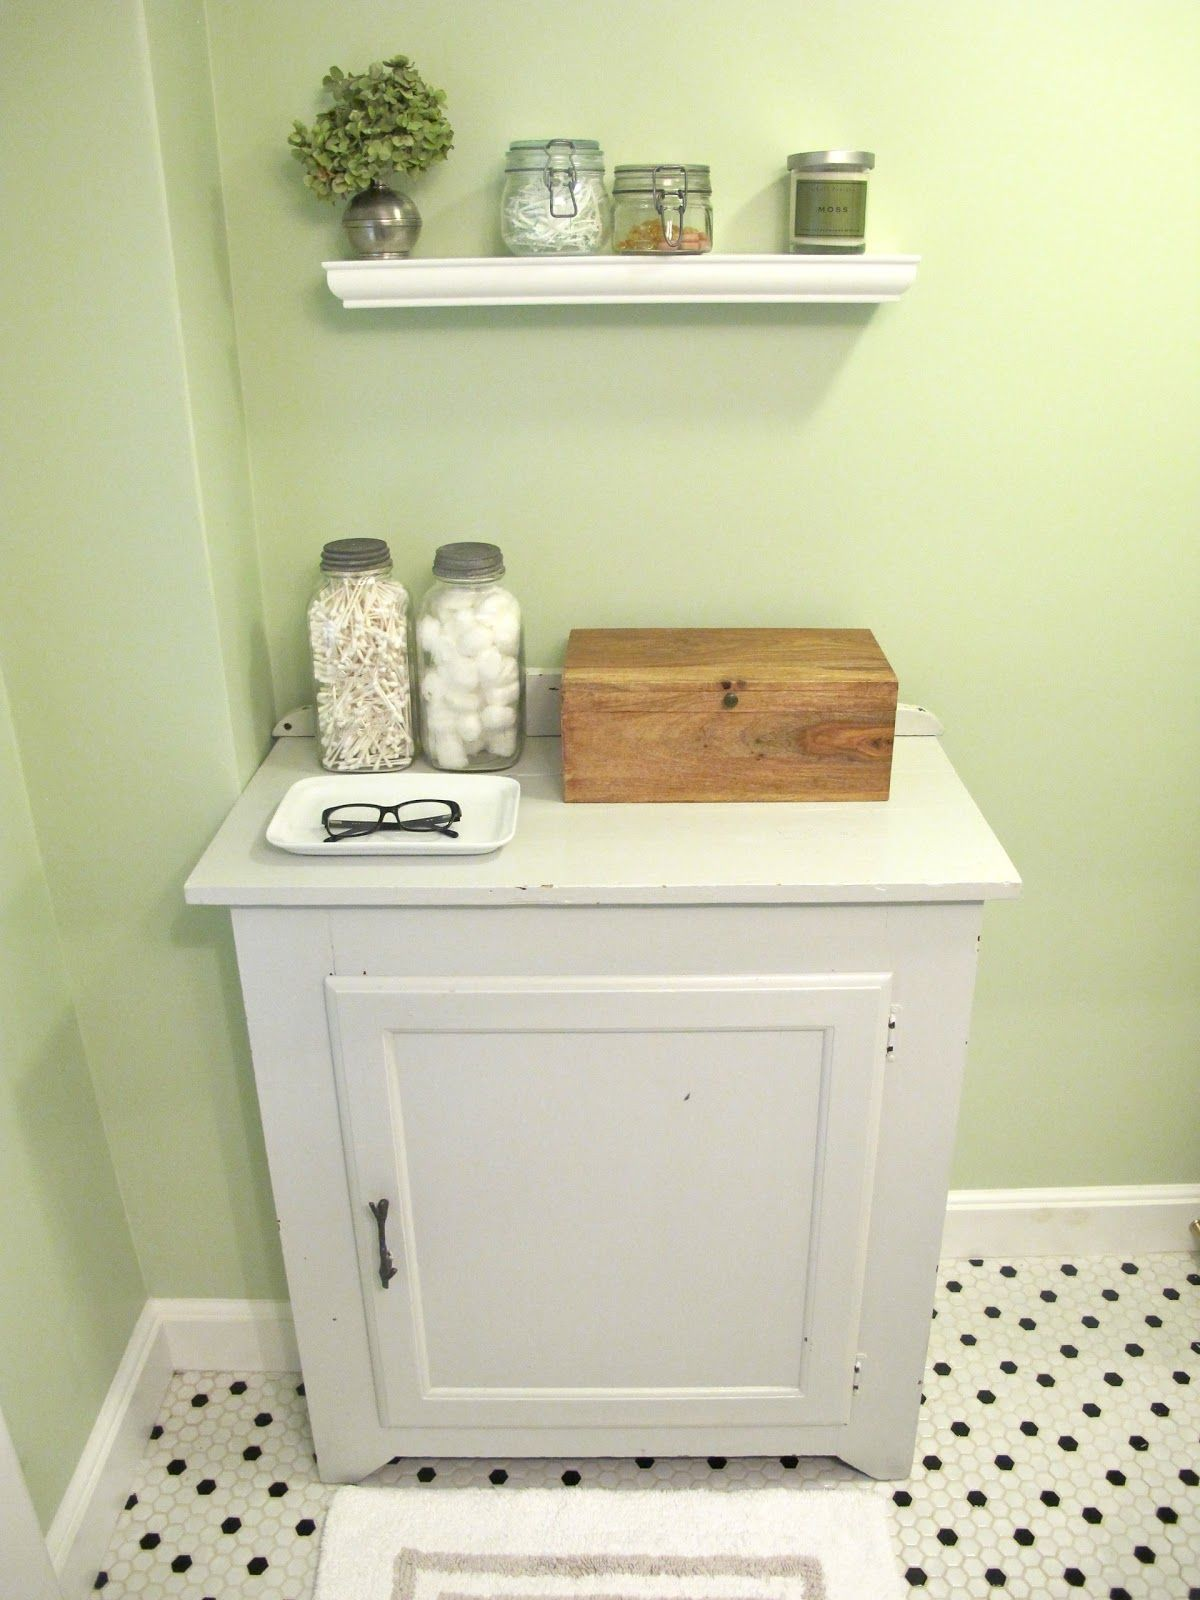 Bathroom cabinet ideas storage pin by hannah berg on to organize  pinterest  bathroom cabinet